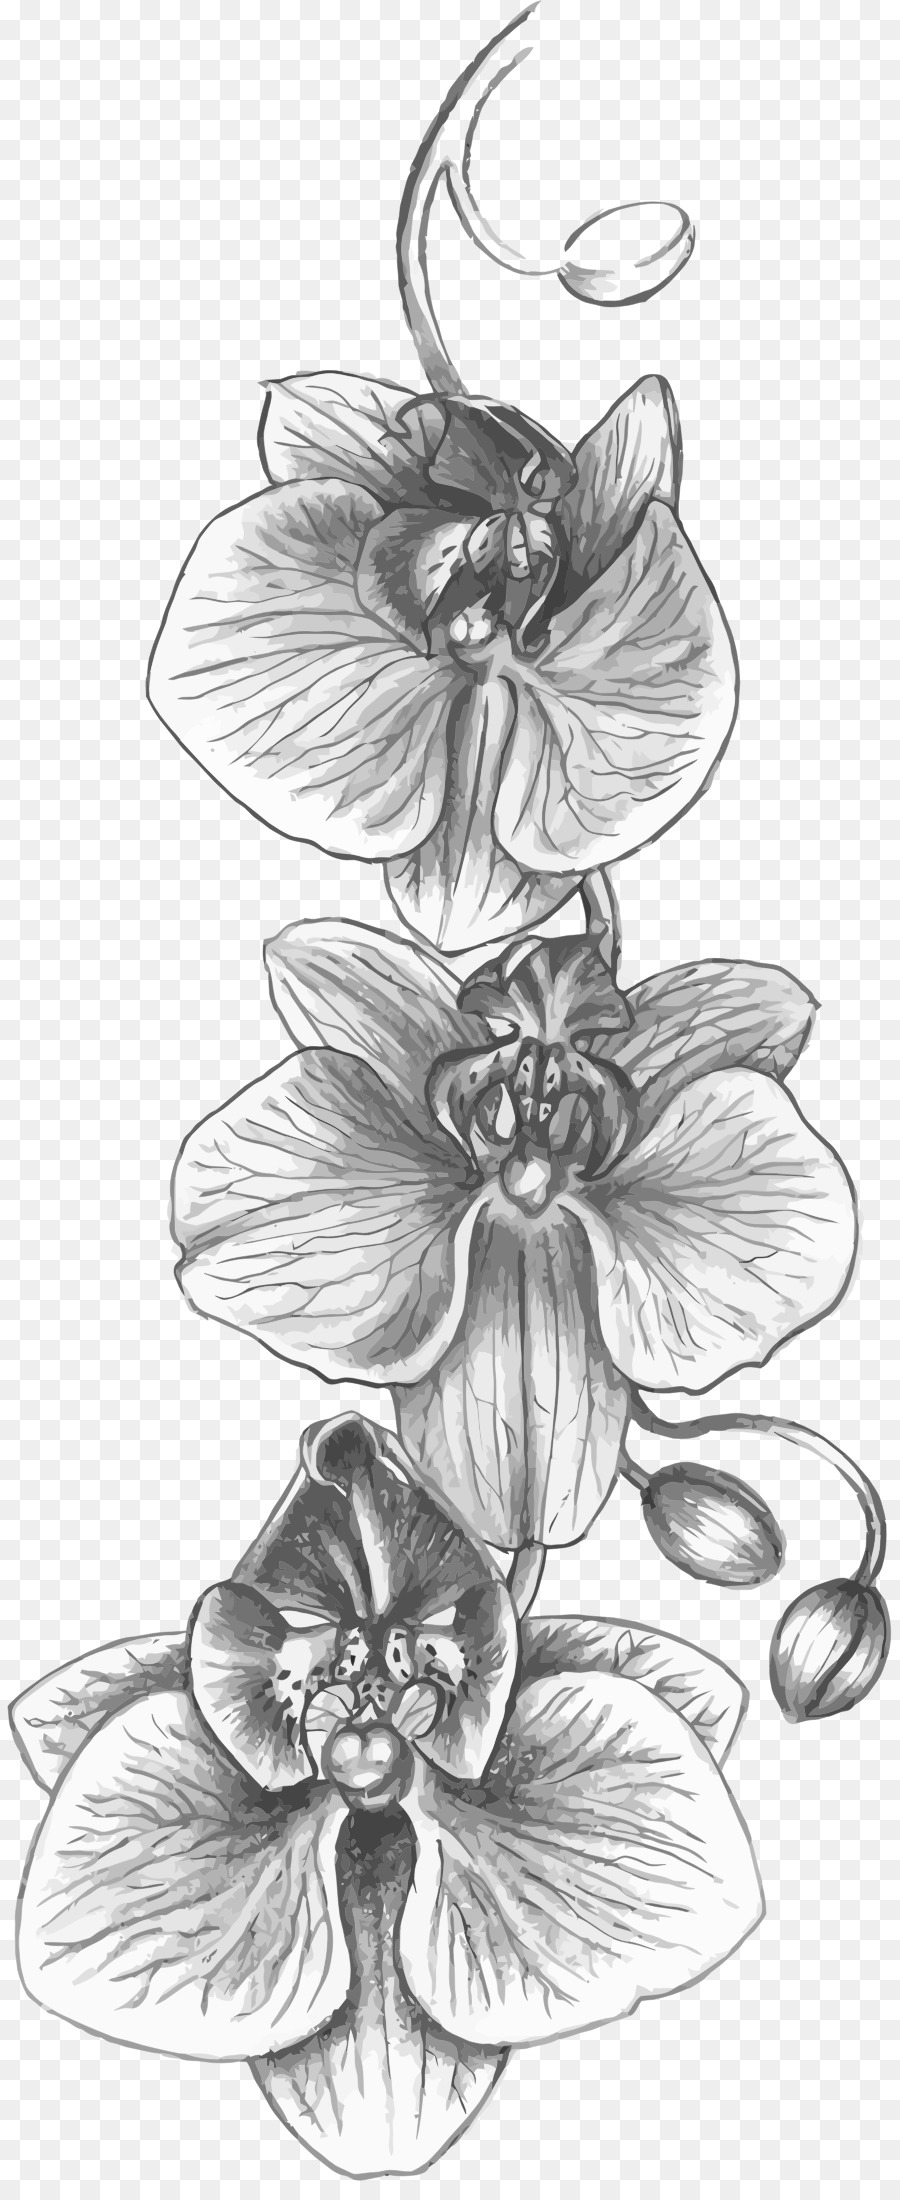 draw an orchid best orchid illustrations royalty free vector graphics an orchid draw